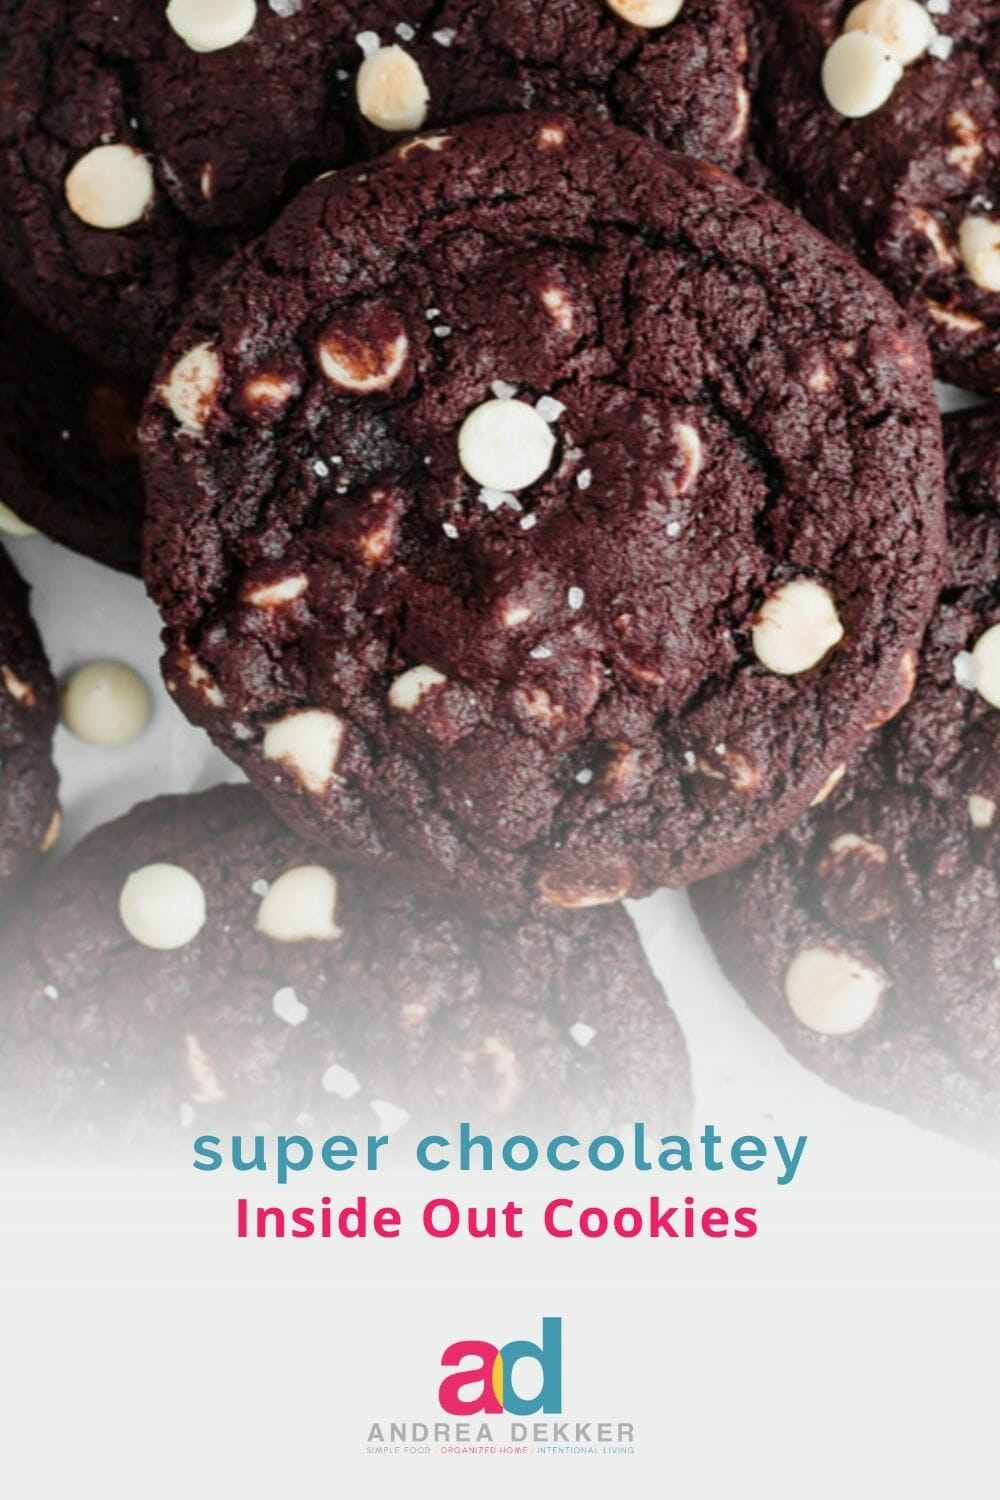 Inside out cookies are a favorite around our house — they are the perfect combination of crispy on the outside but still soft and chewy on the inside. And… they're really easy to make! via @andreadekker